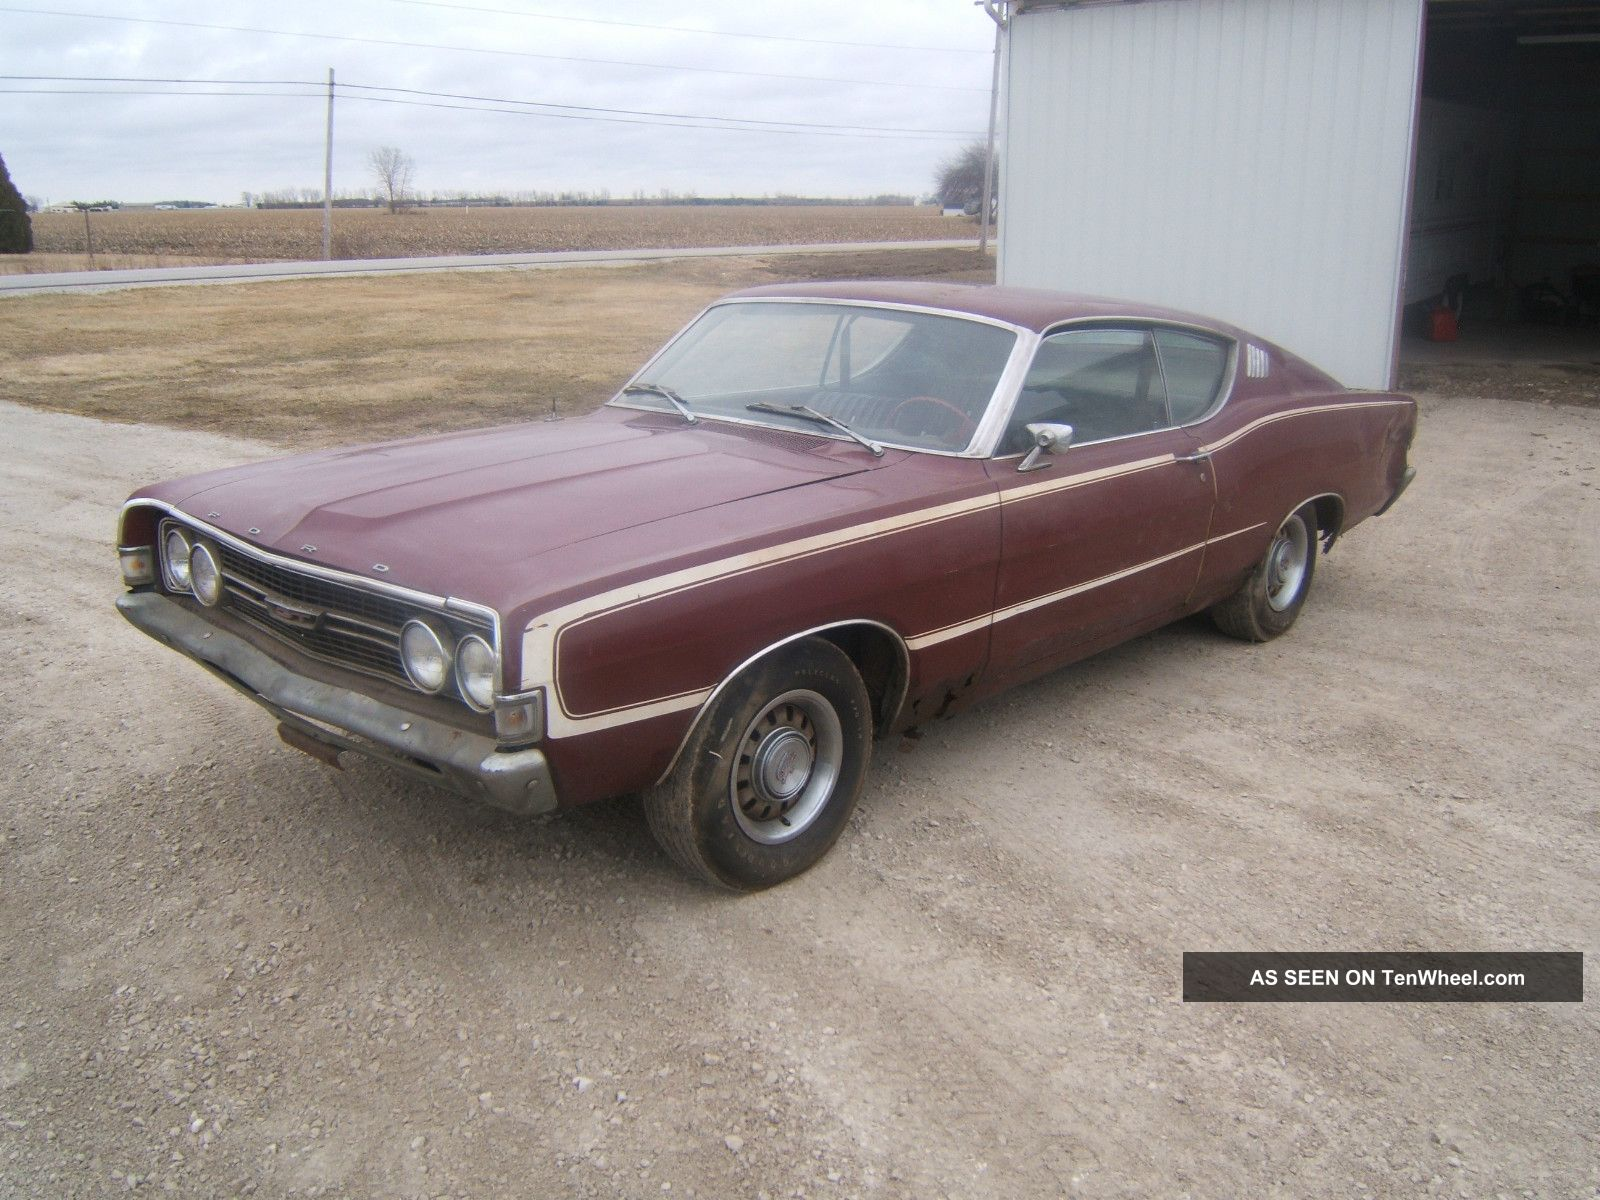 1968 Ford Torino Gt Fastback, One Family Owned,